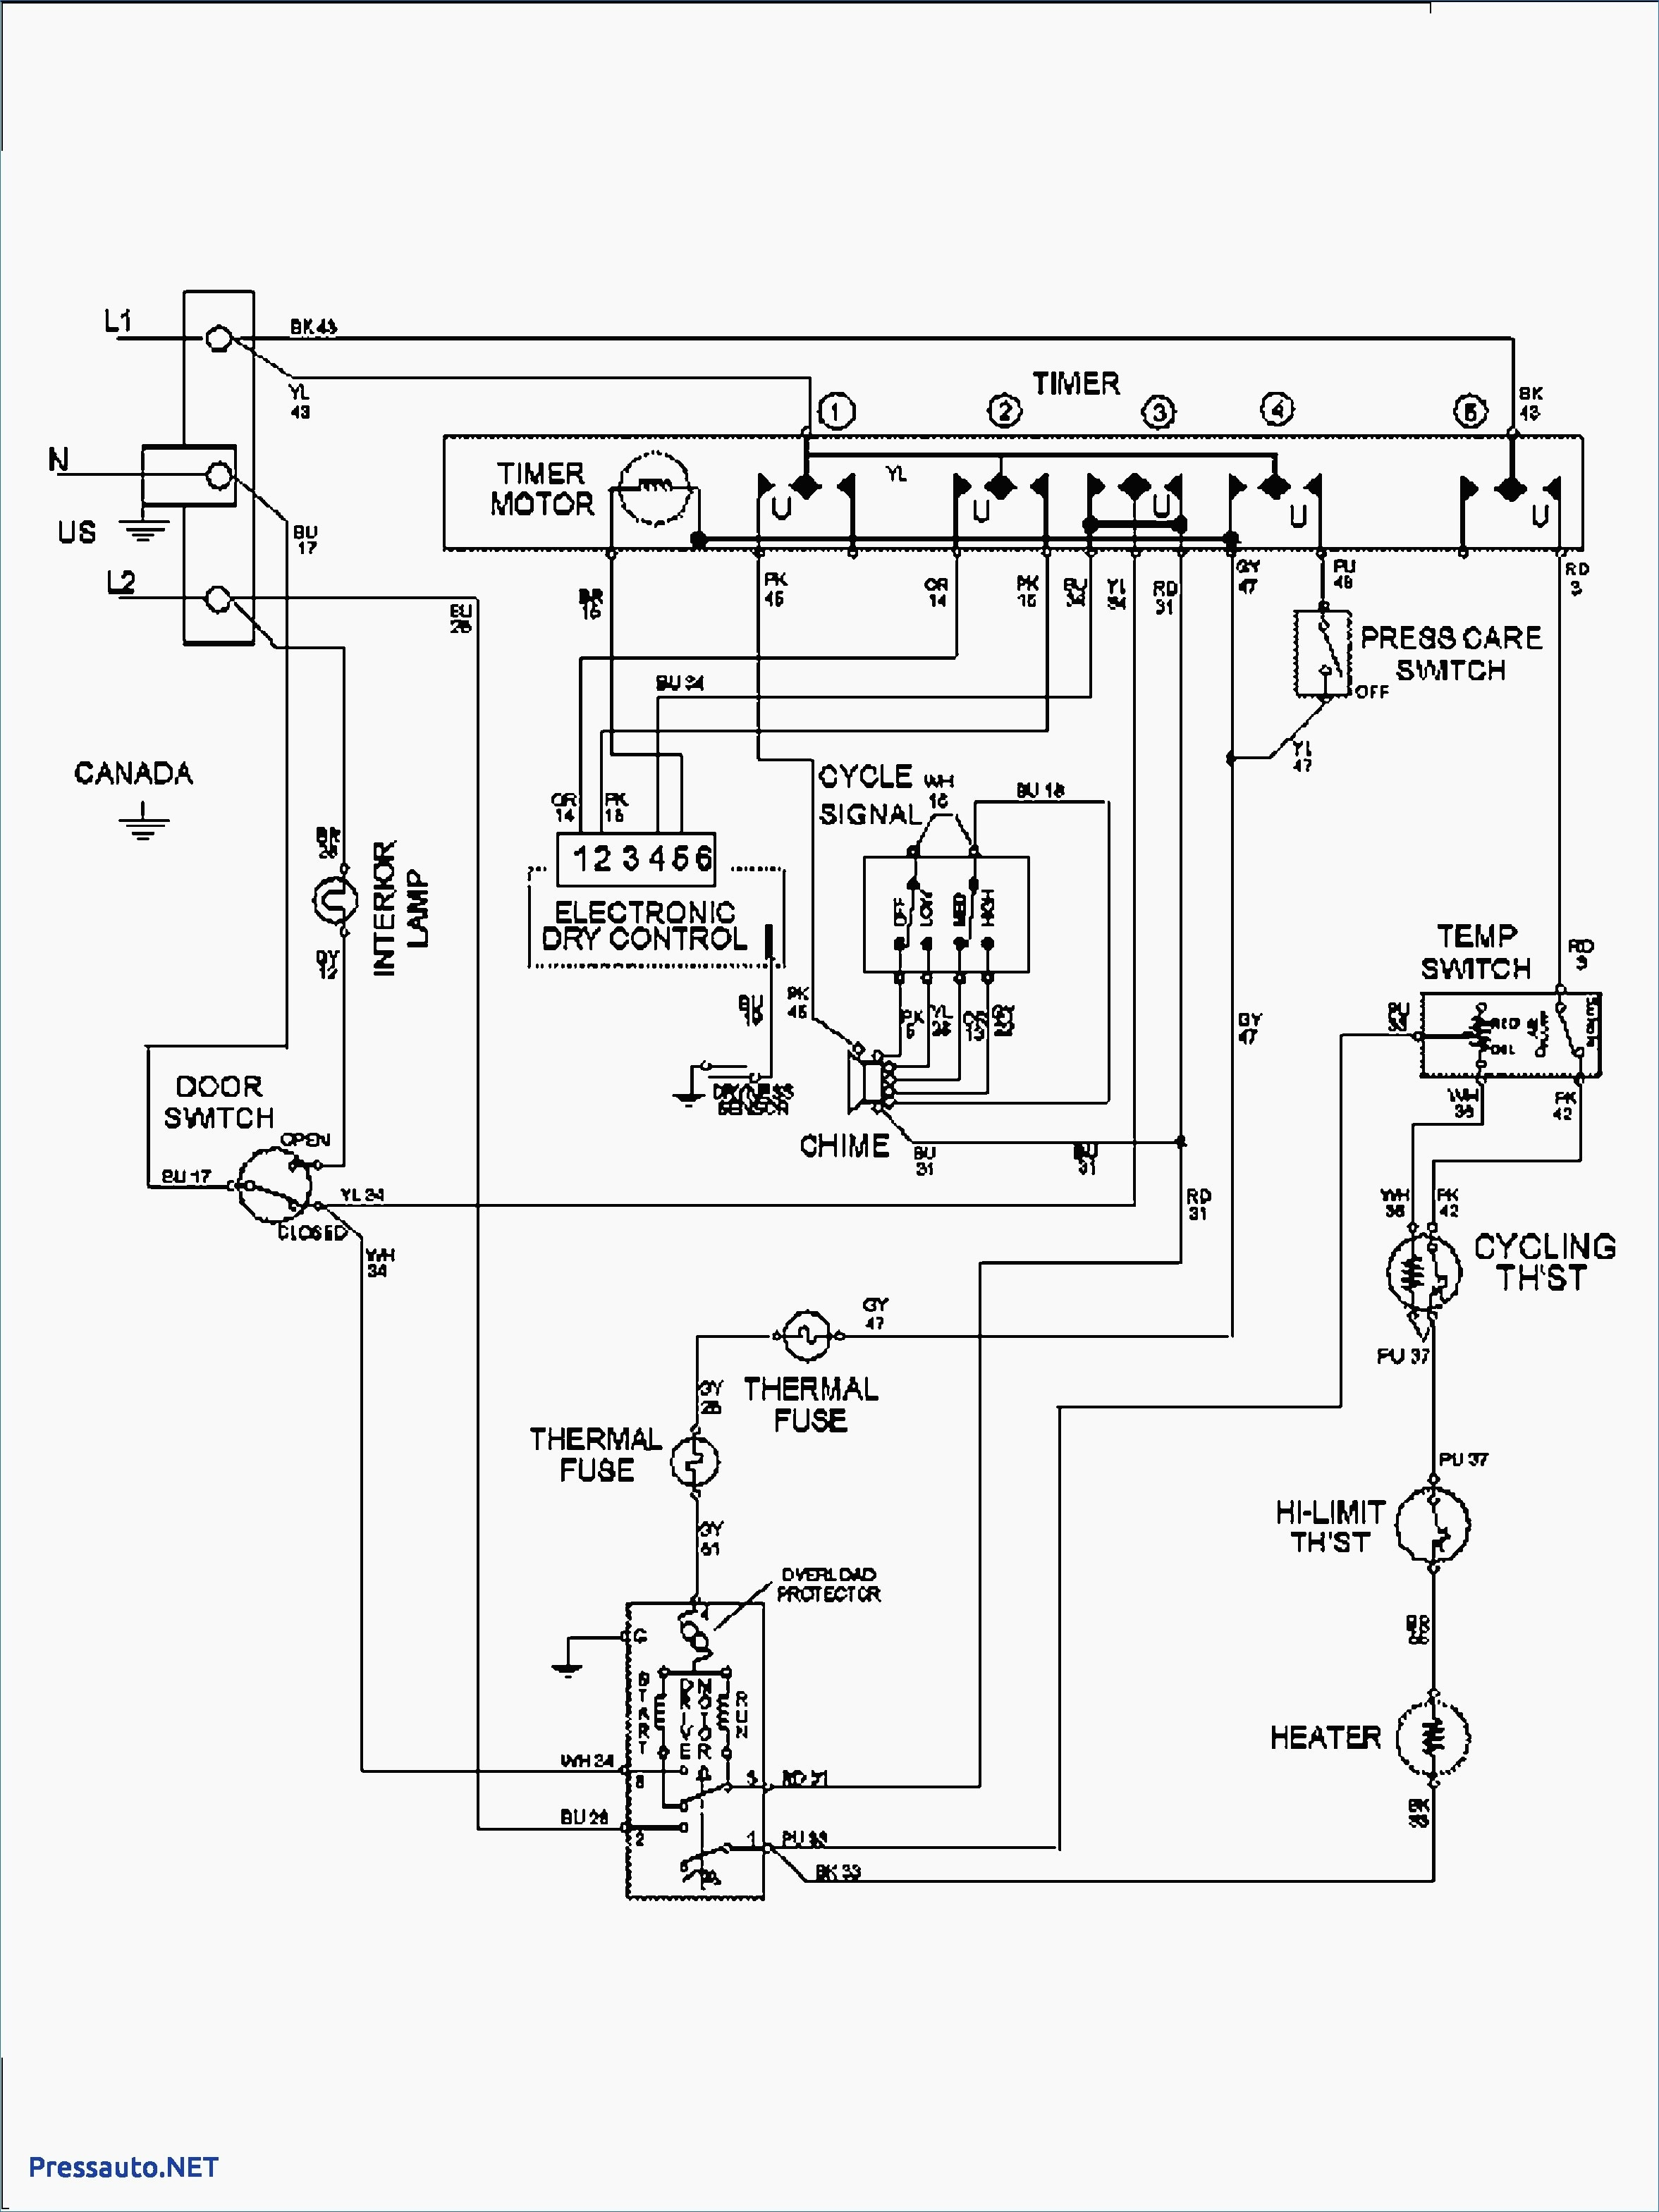 whirlpool dryer wiring diagram 3406688